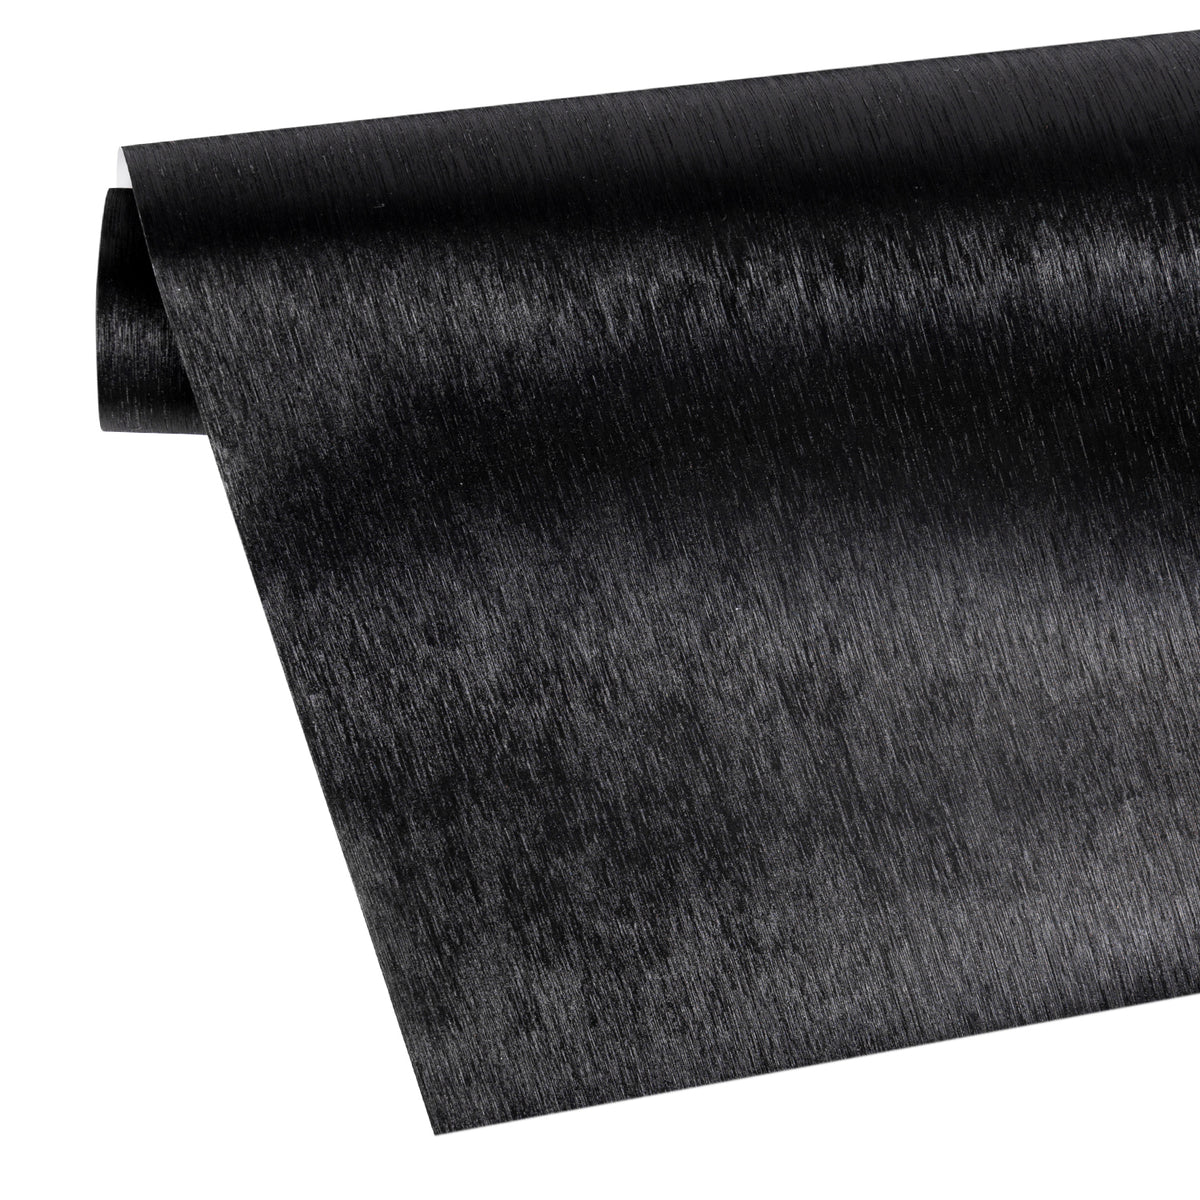 Wrapaholic-Metallic-Brush-Wrapping-Paper-Roll-Black